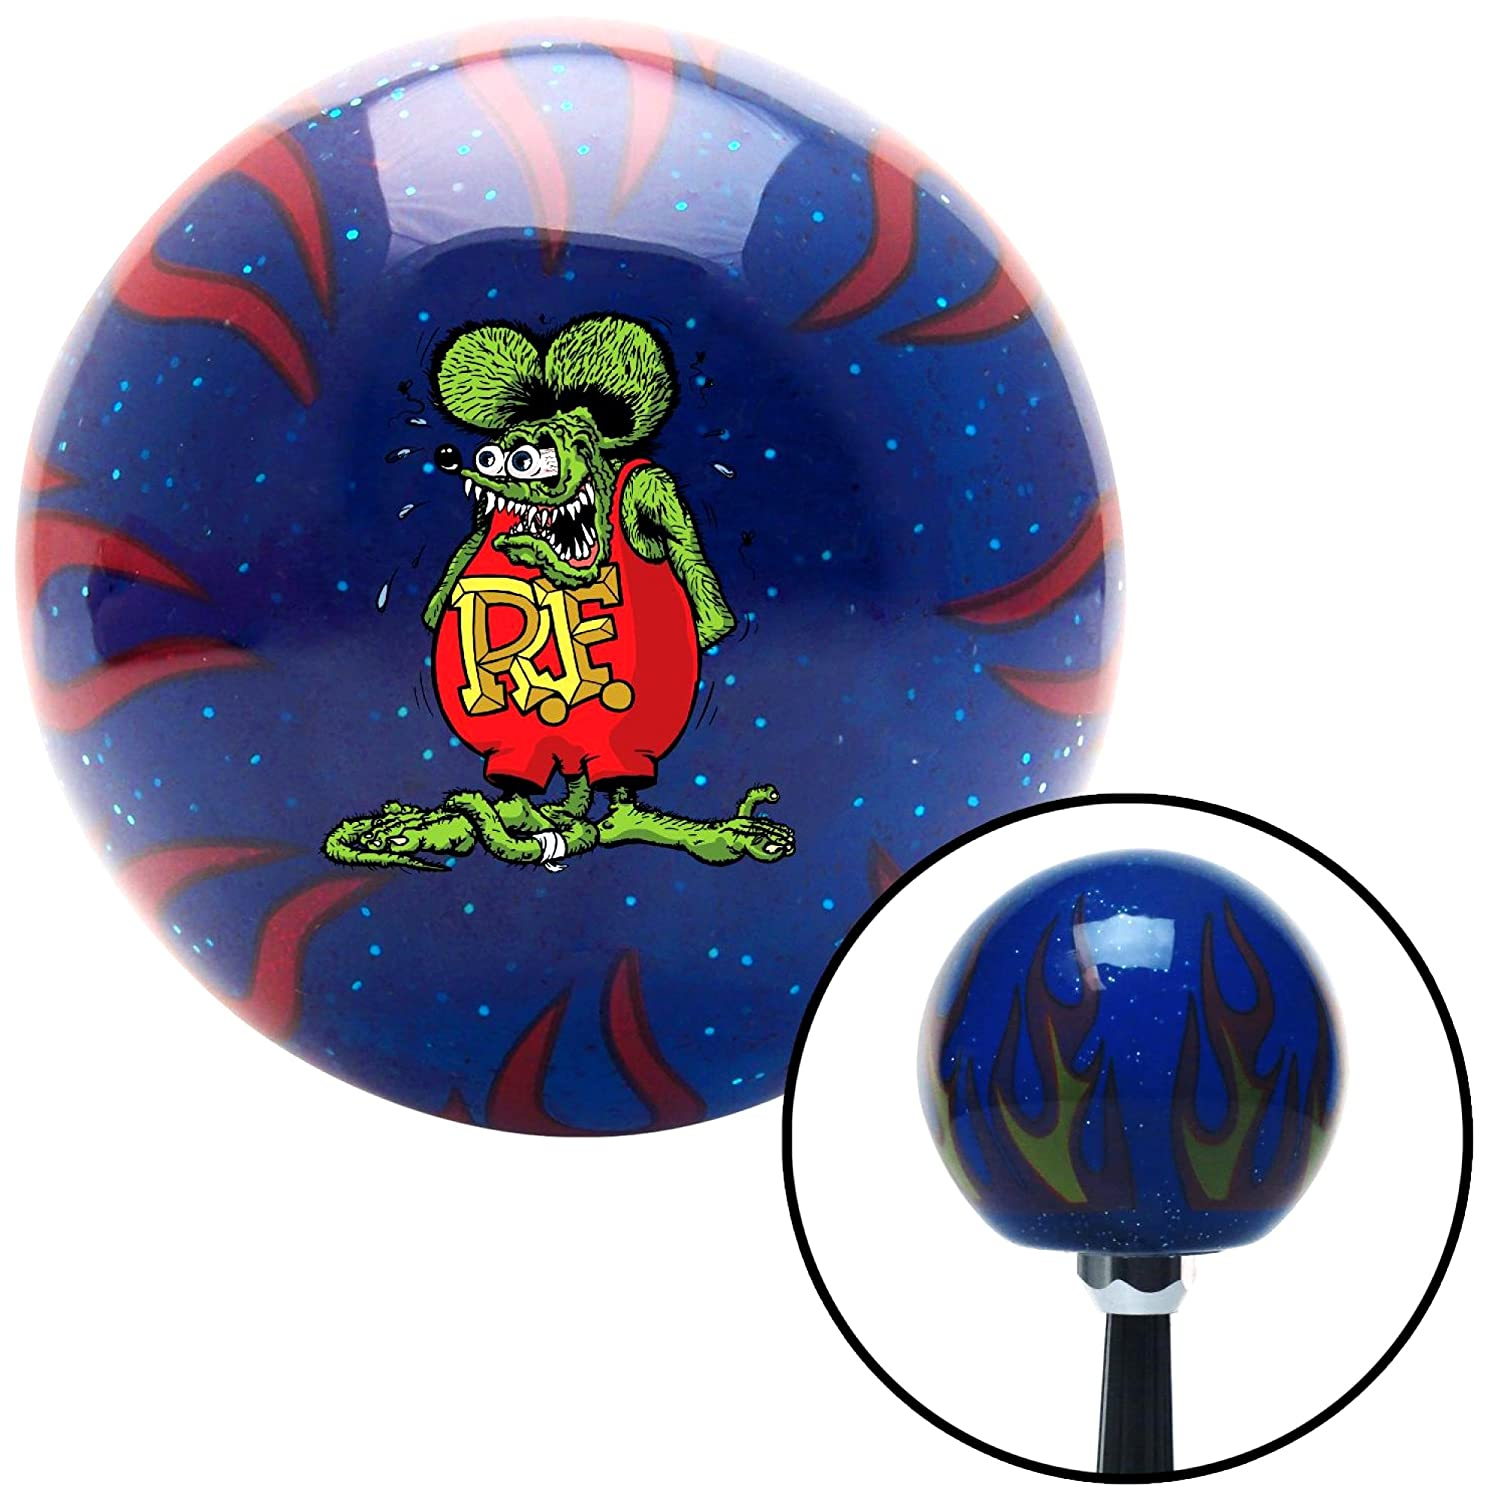 American Shifter 327583 Rat Fink Green Flame Metal Flake Shift Knob with M16 x 1.5 Insert